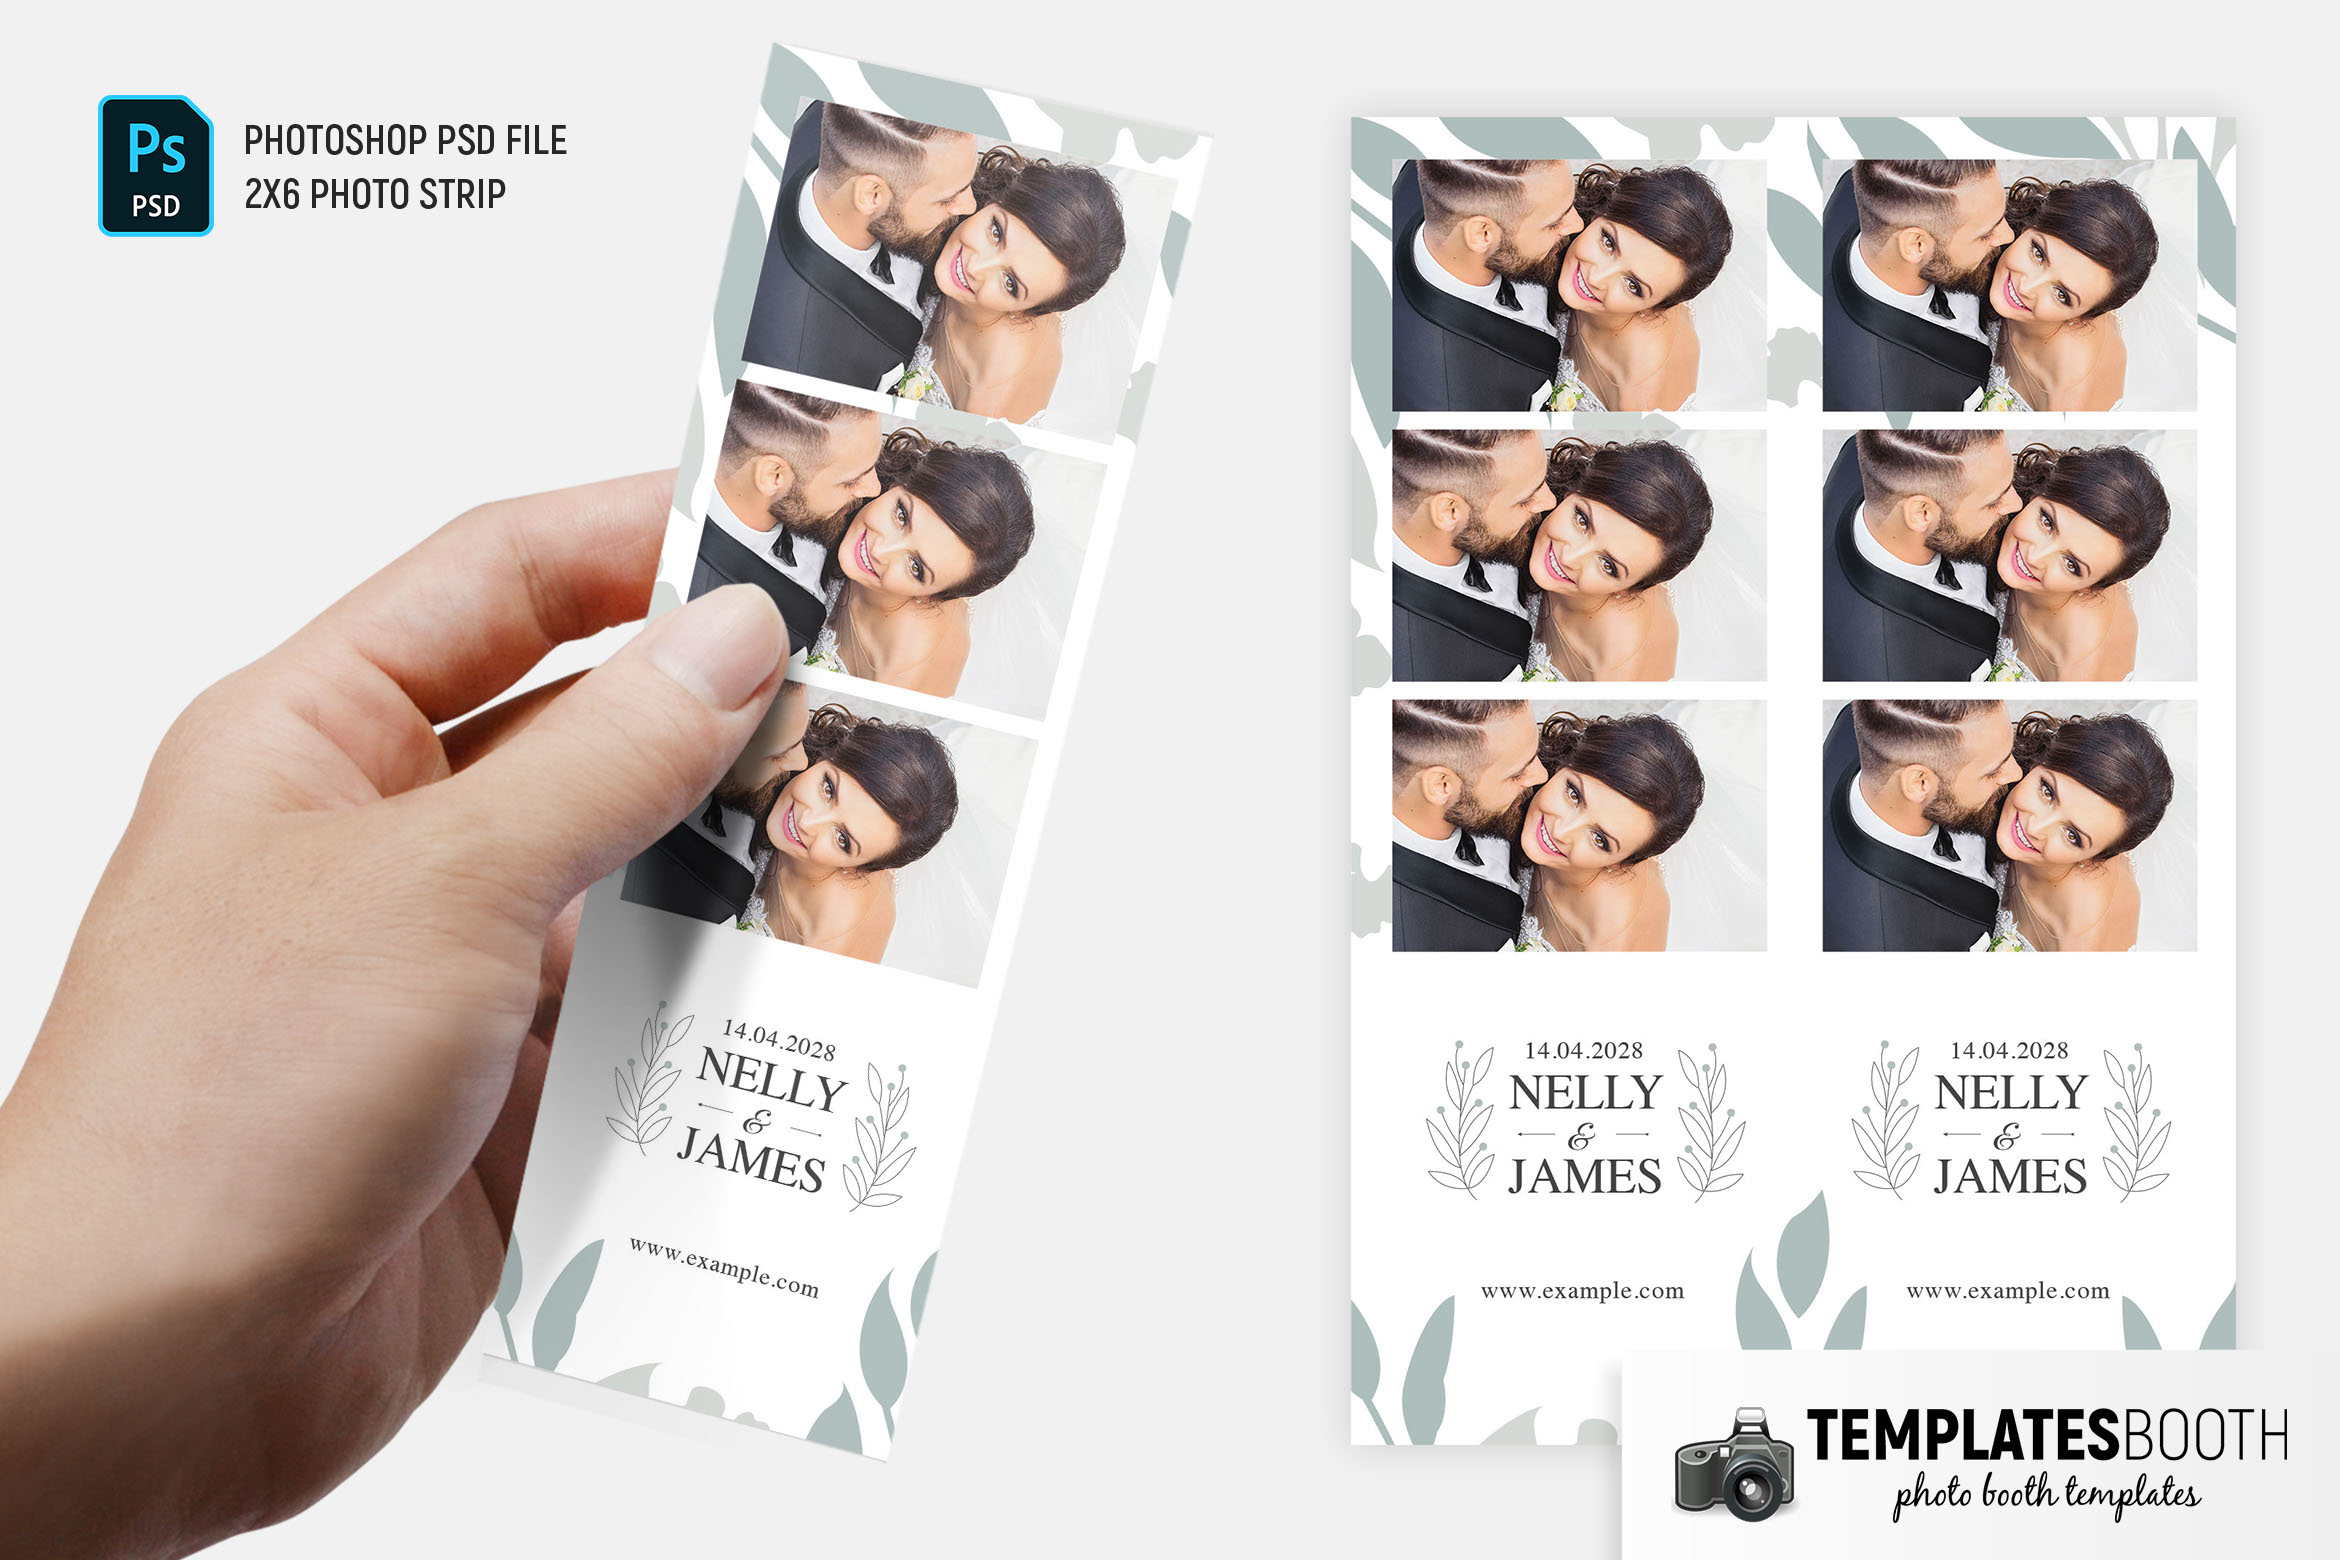 Minimal Wedding Photo Booth Template (PSD & DSLR Booth)